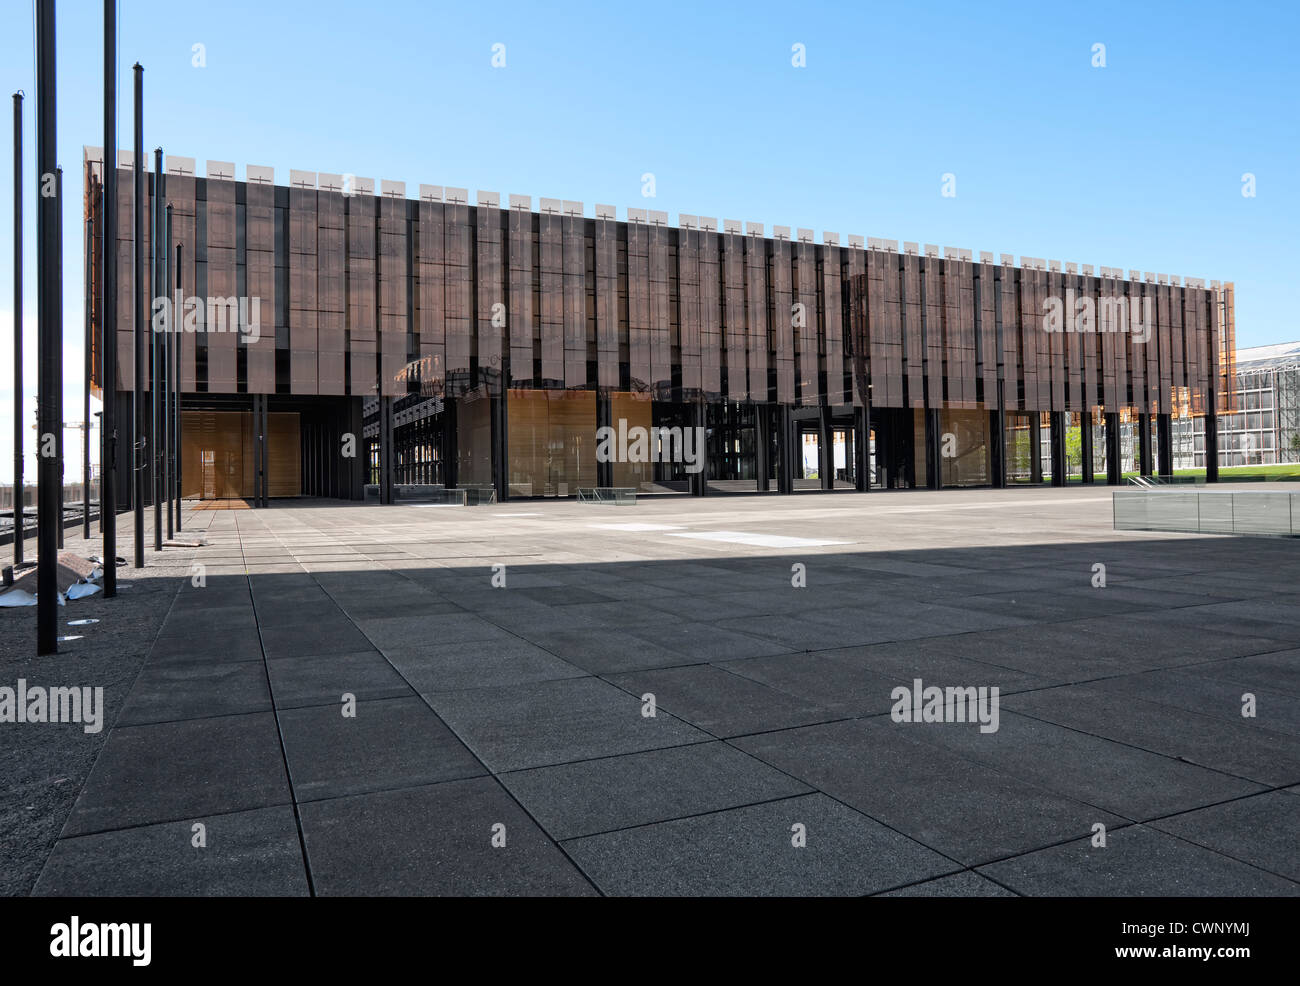 European Court of Justice, Kirchberg Plateau, European District, Luxembourg City, Europe - Stock Image